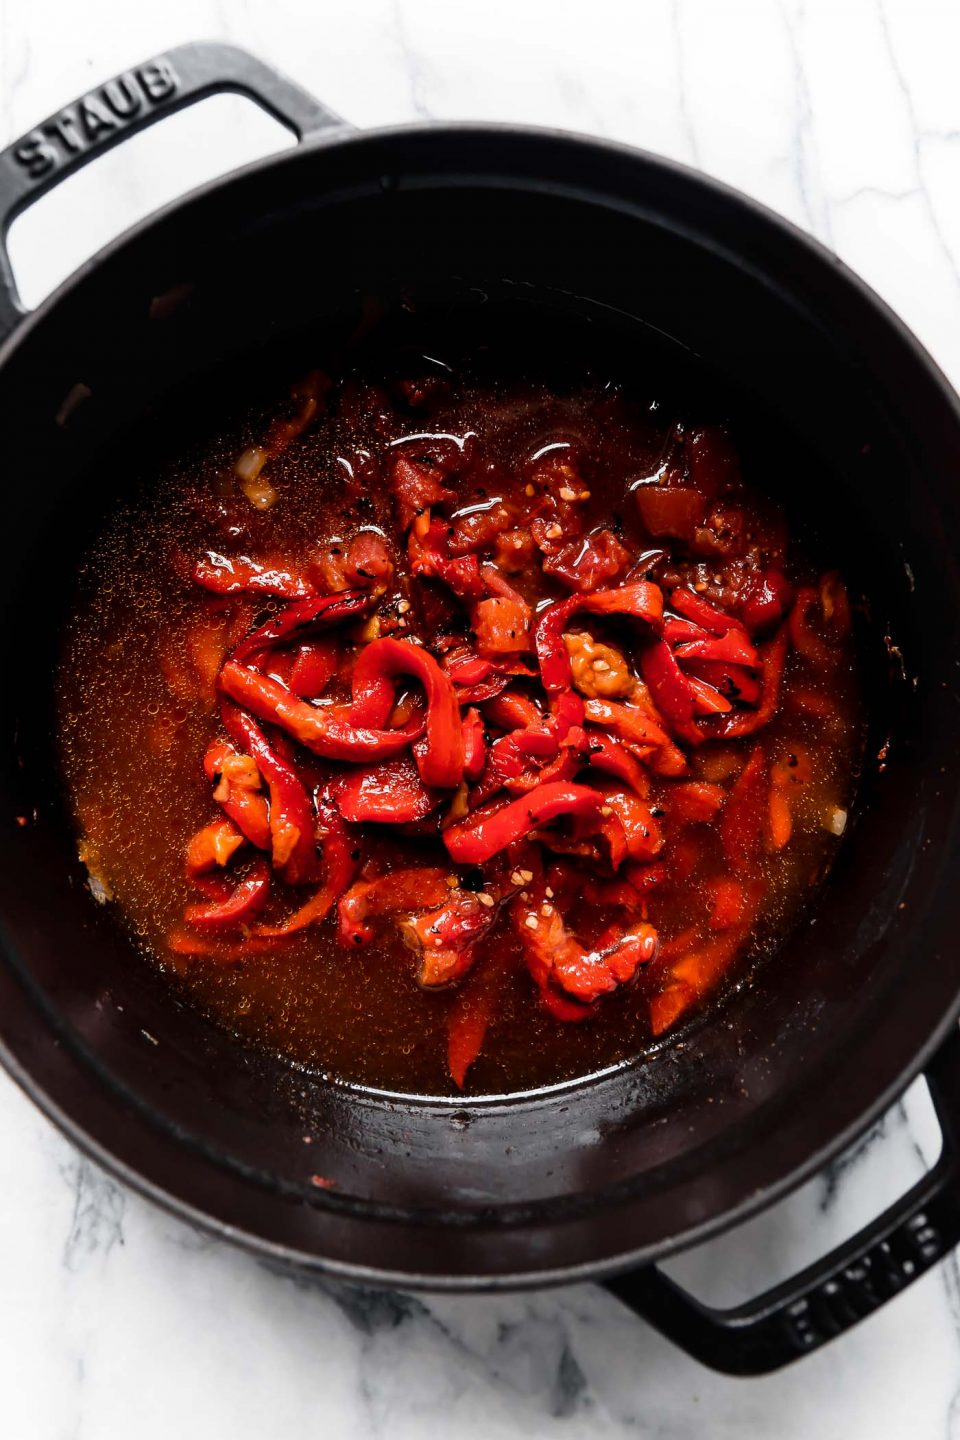 Roasted Red Peppers, crushed tomatoes, & veggie stock added to the black Staub Dutch oven for Creamy Roasted Red Pepper Soup